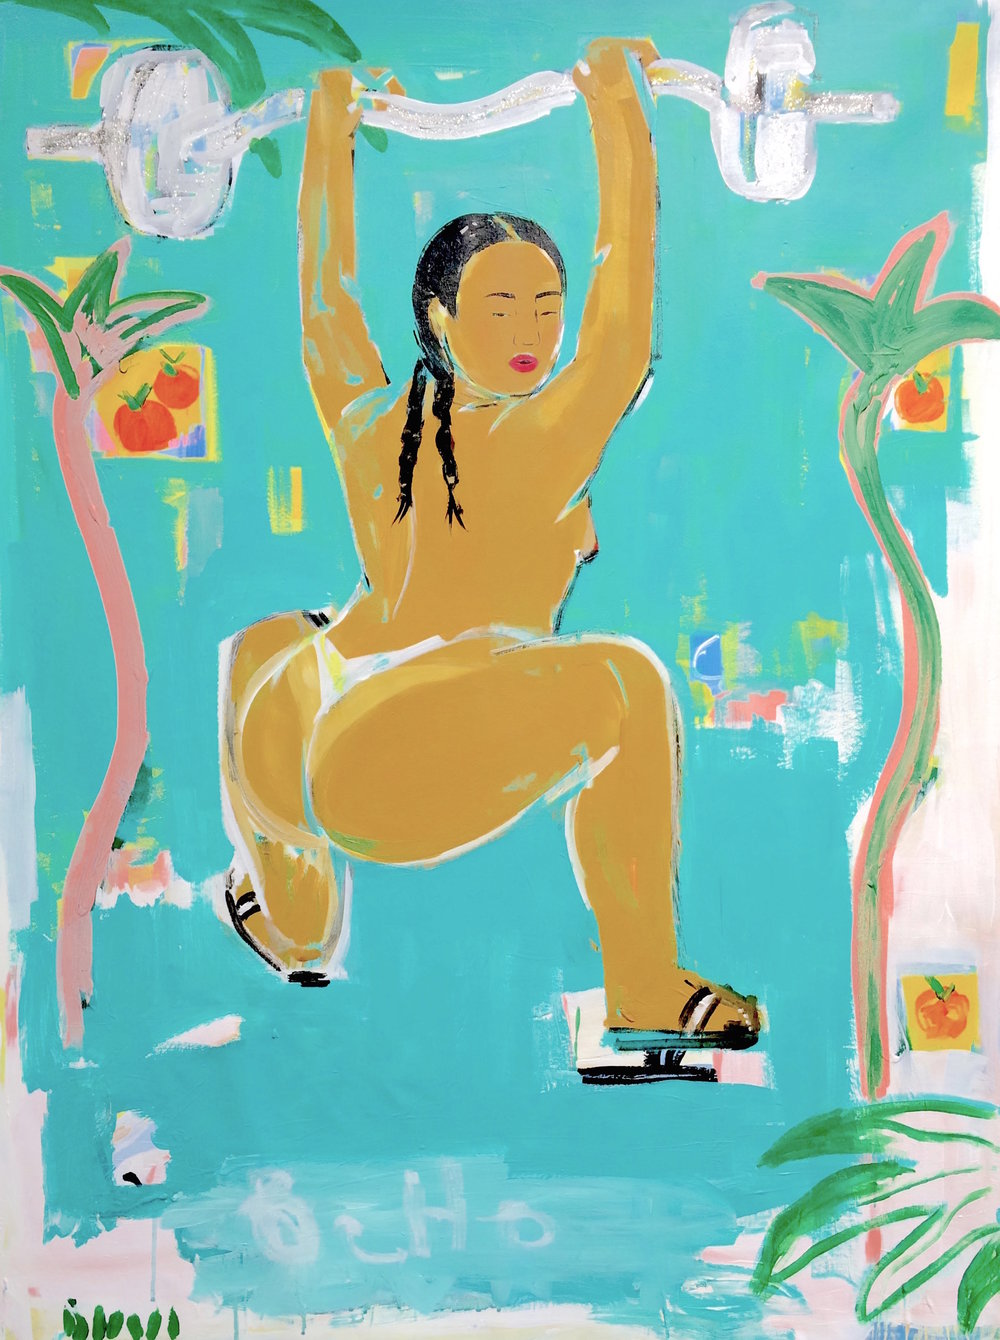 Squatting Between Orange Trees, 2017, acrylic on canvas, 48 x 36 inches